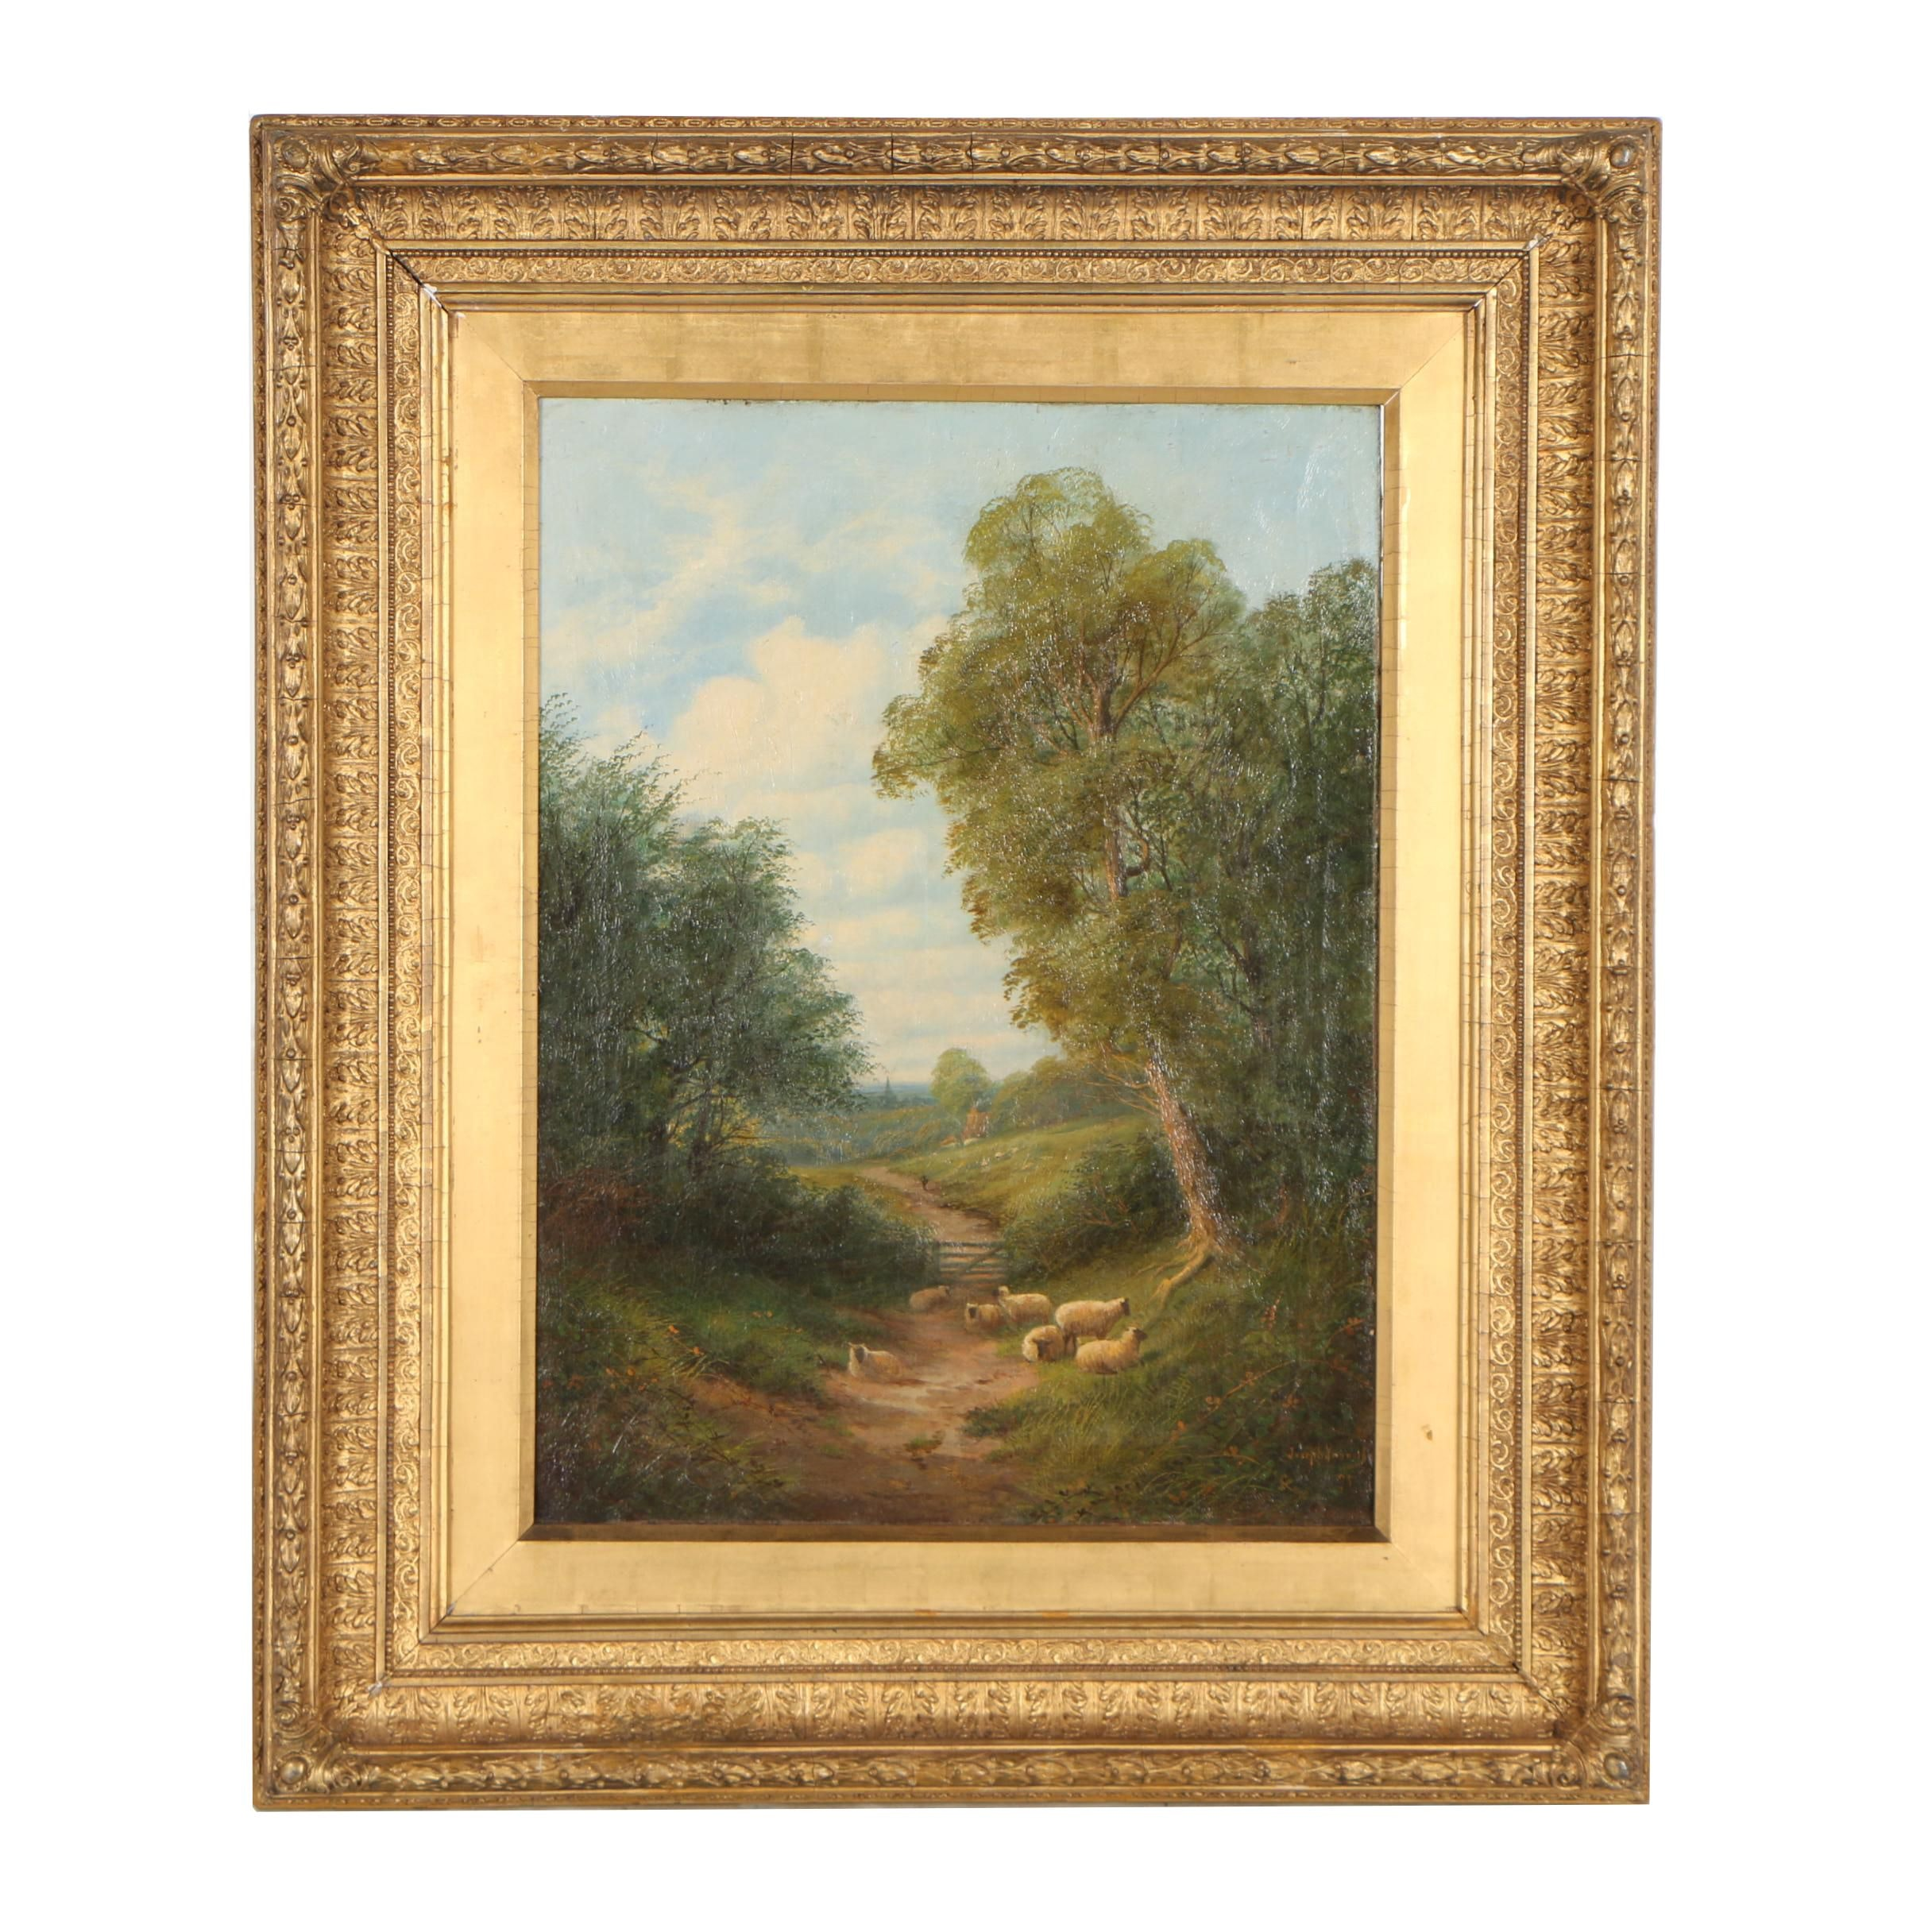 Joseph W. Yarnold 1878 Oil Painting of Pastoral Landscape